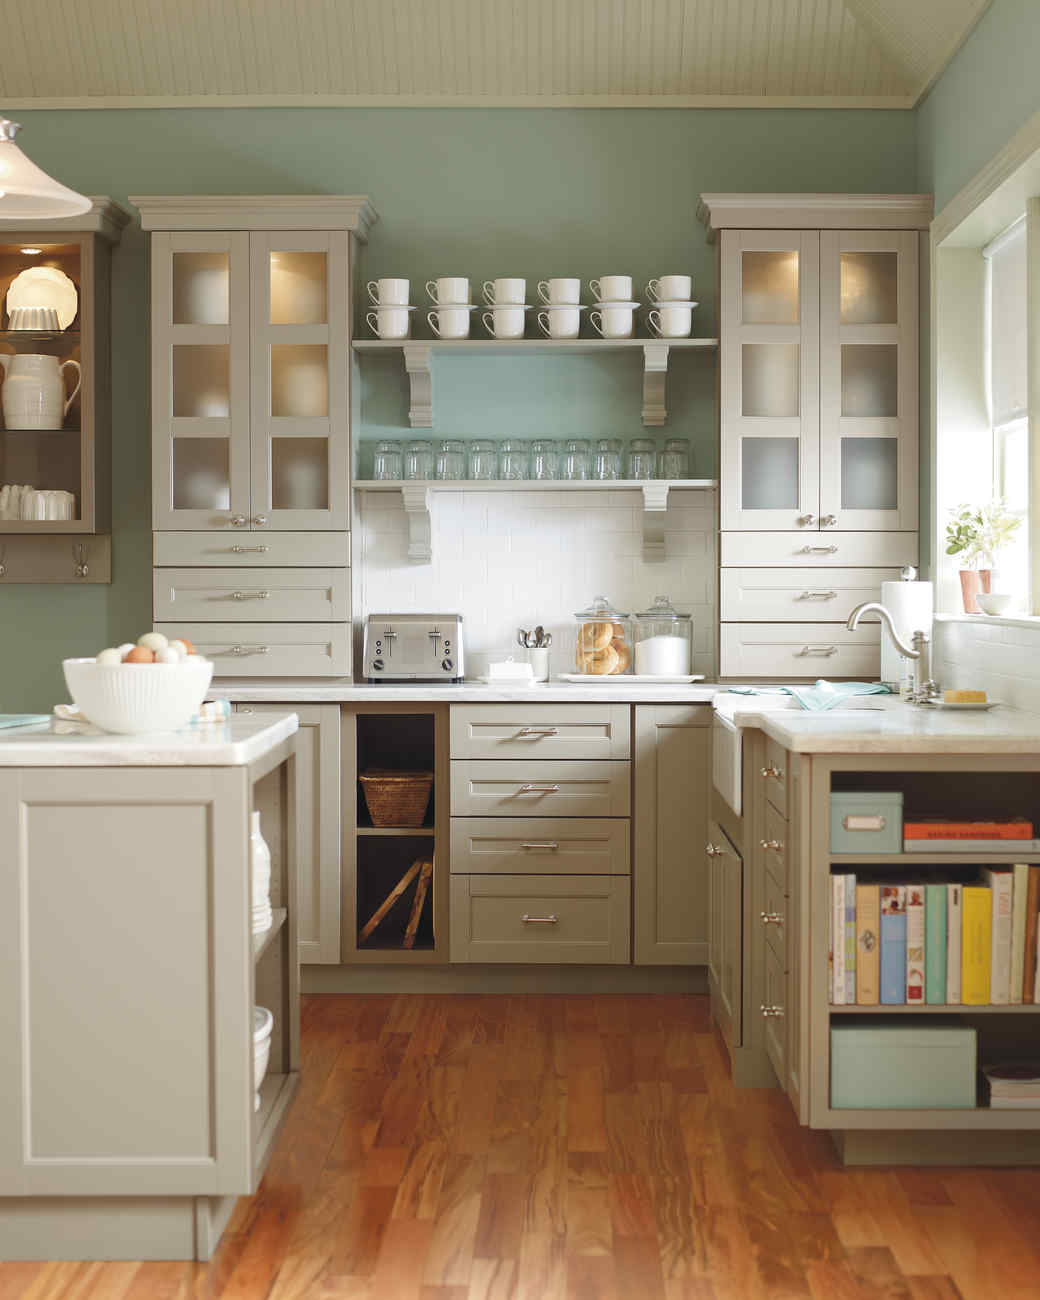 Green Kitchen Colour Ideas Home Trends: How To Pick Kitchen Paint Colors